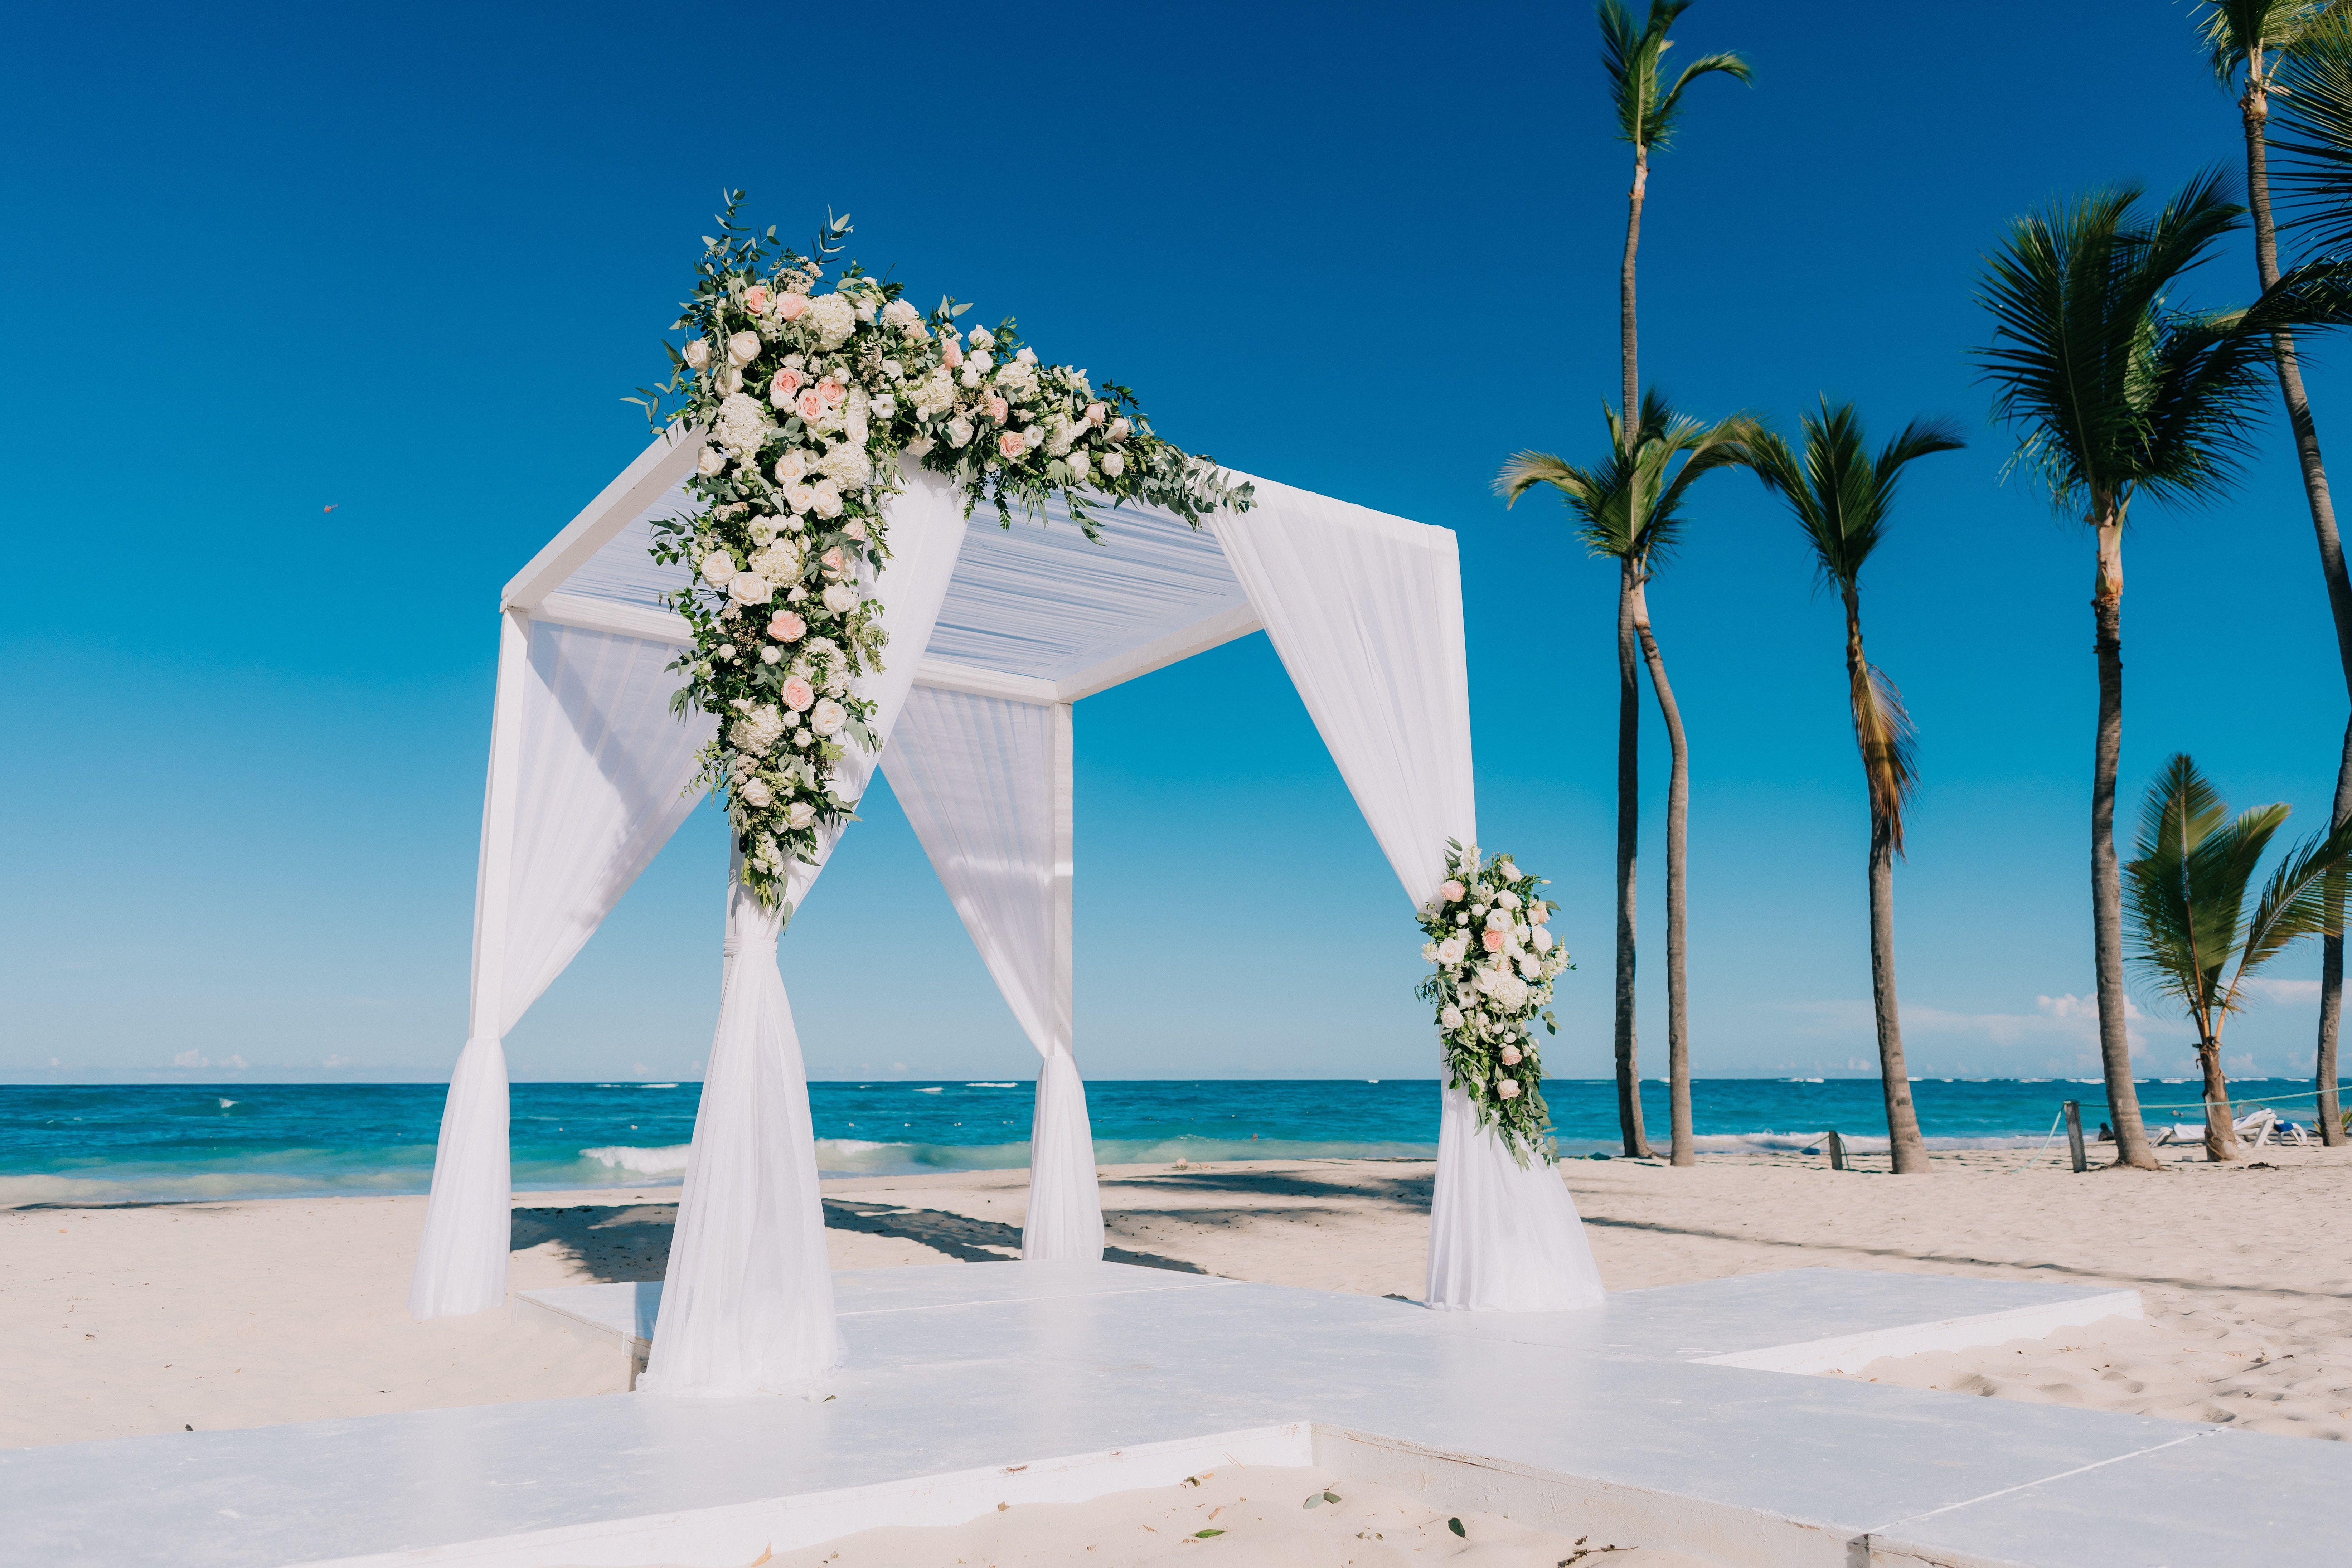 Destination Wedding Gazebo Set Against The Blue See And Sky Is